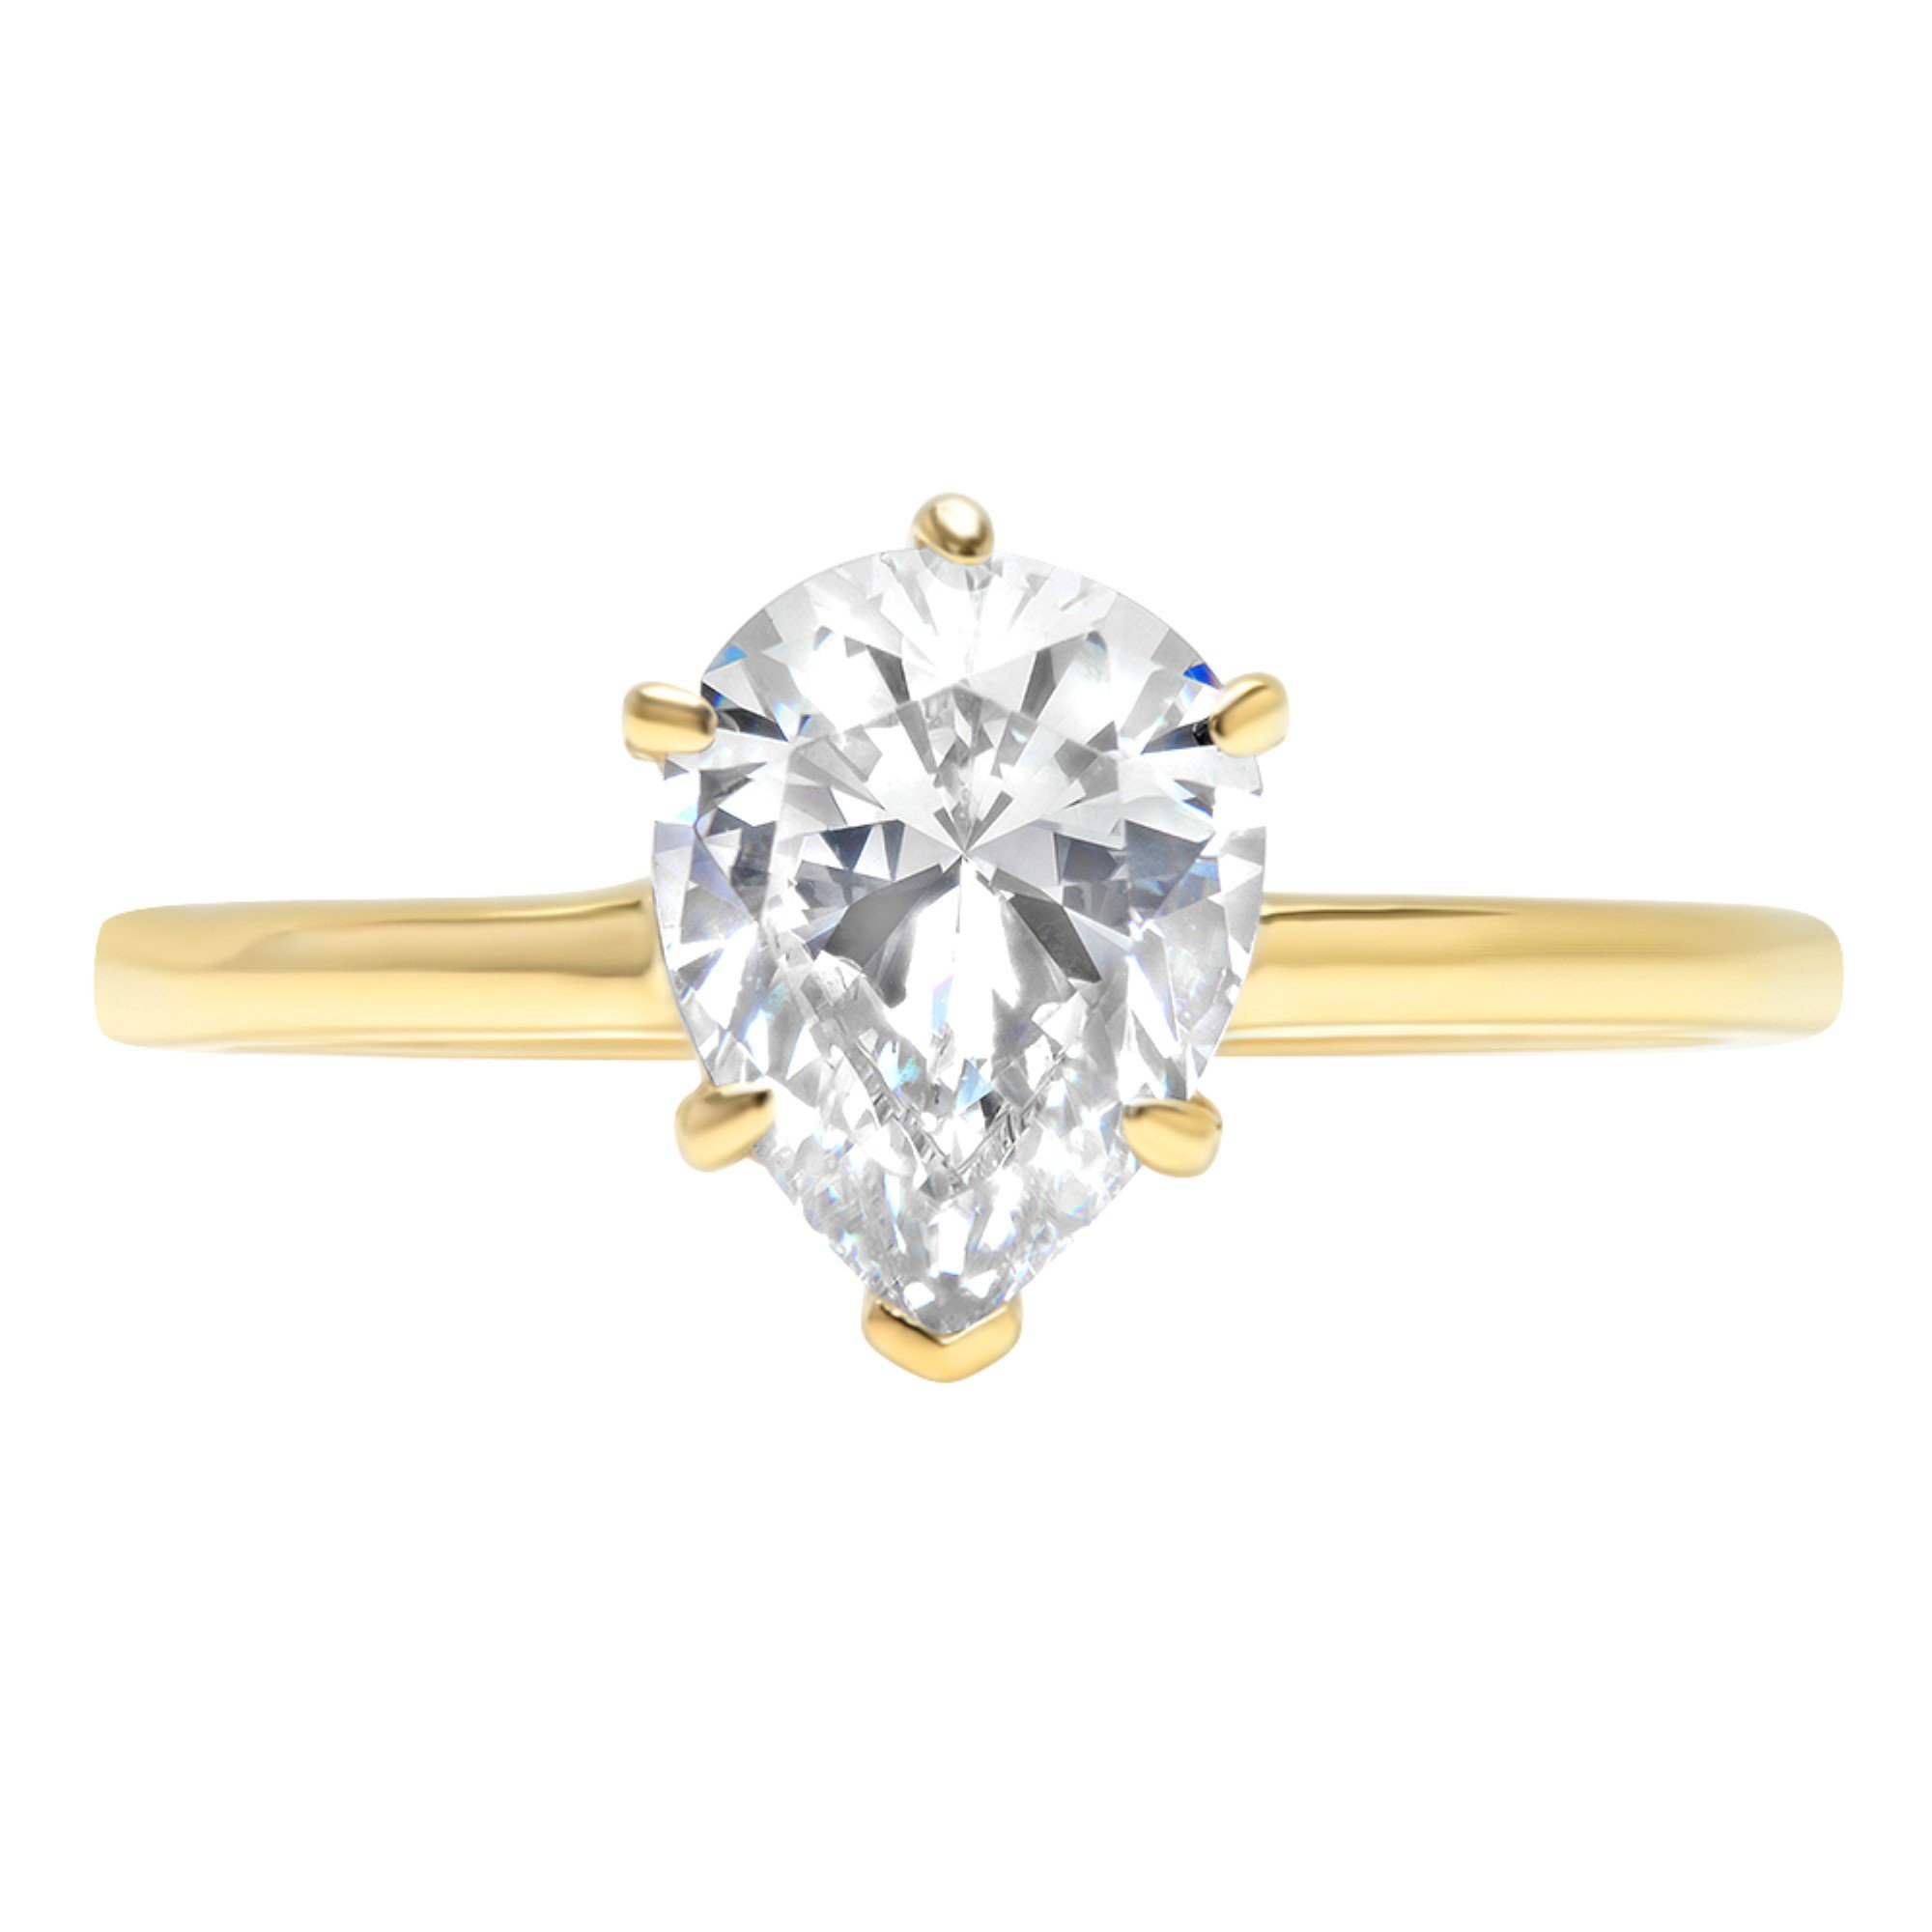 14k Yellow Gold 1.05ct Pear Brilliant Cut Classic Solitaire Designer Wedding Bridal Statement Anniversary Engagement Promise Ring Solid, 7